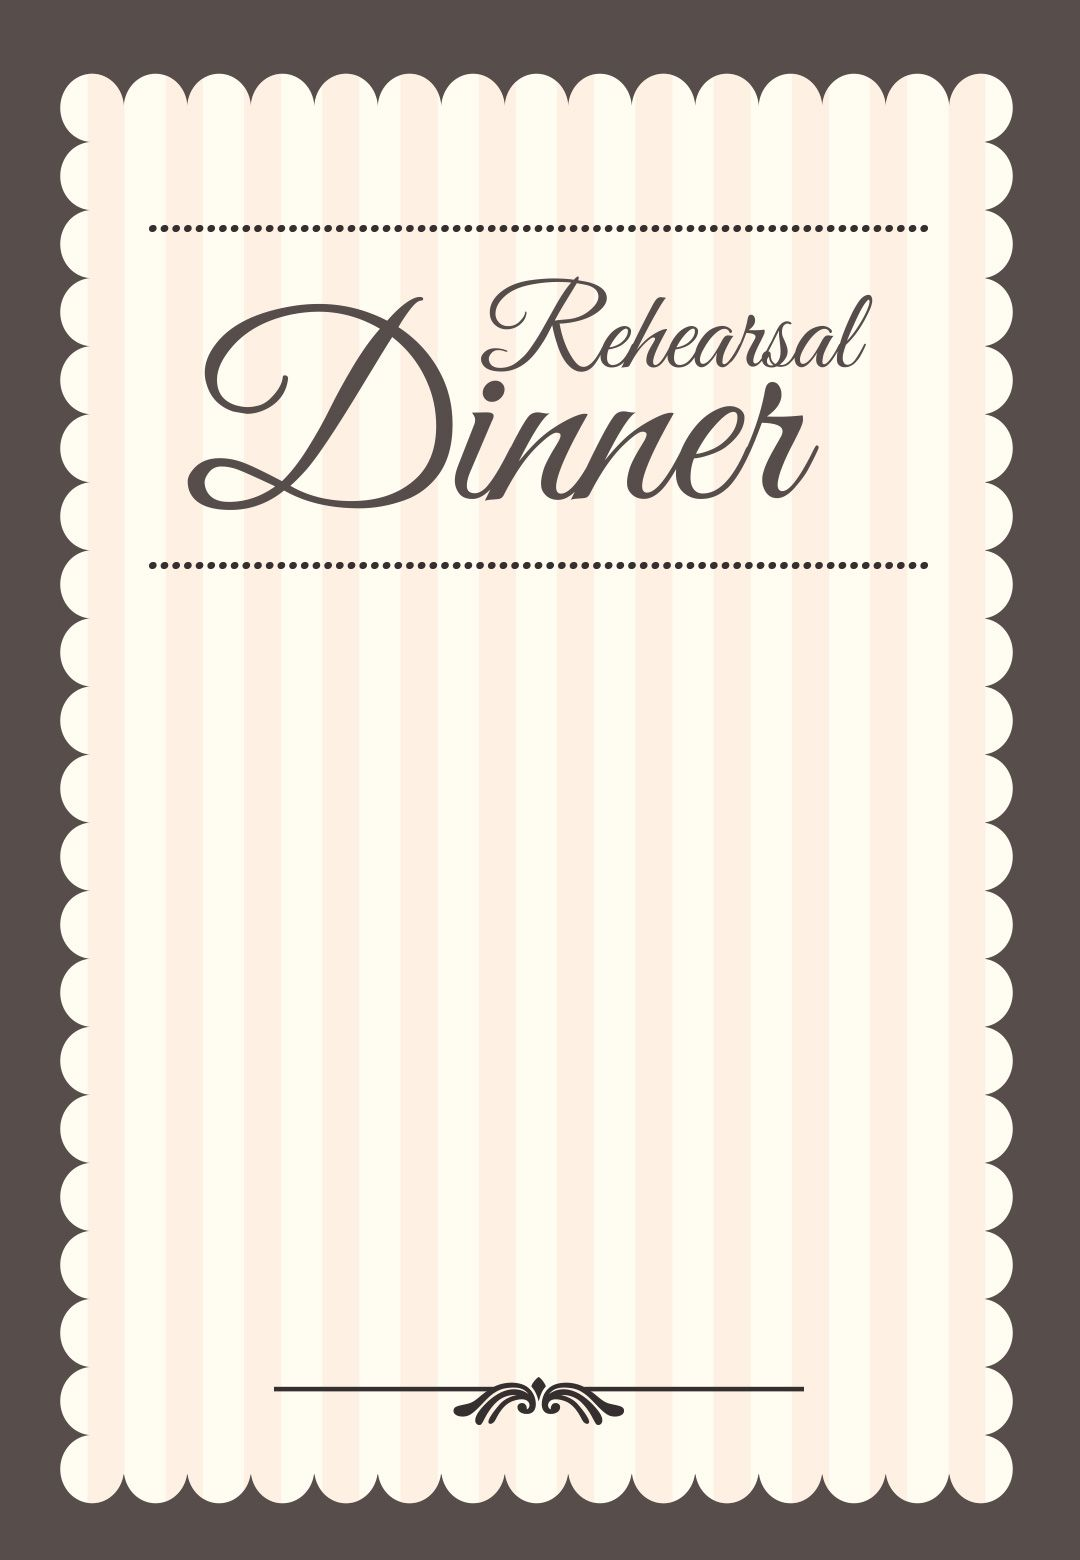 Dinner Invitation Template Stamped Rehearsal Dinner  Free Printable Rehearsal Dinner Party .